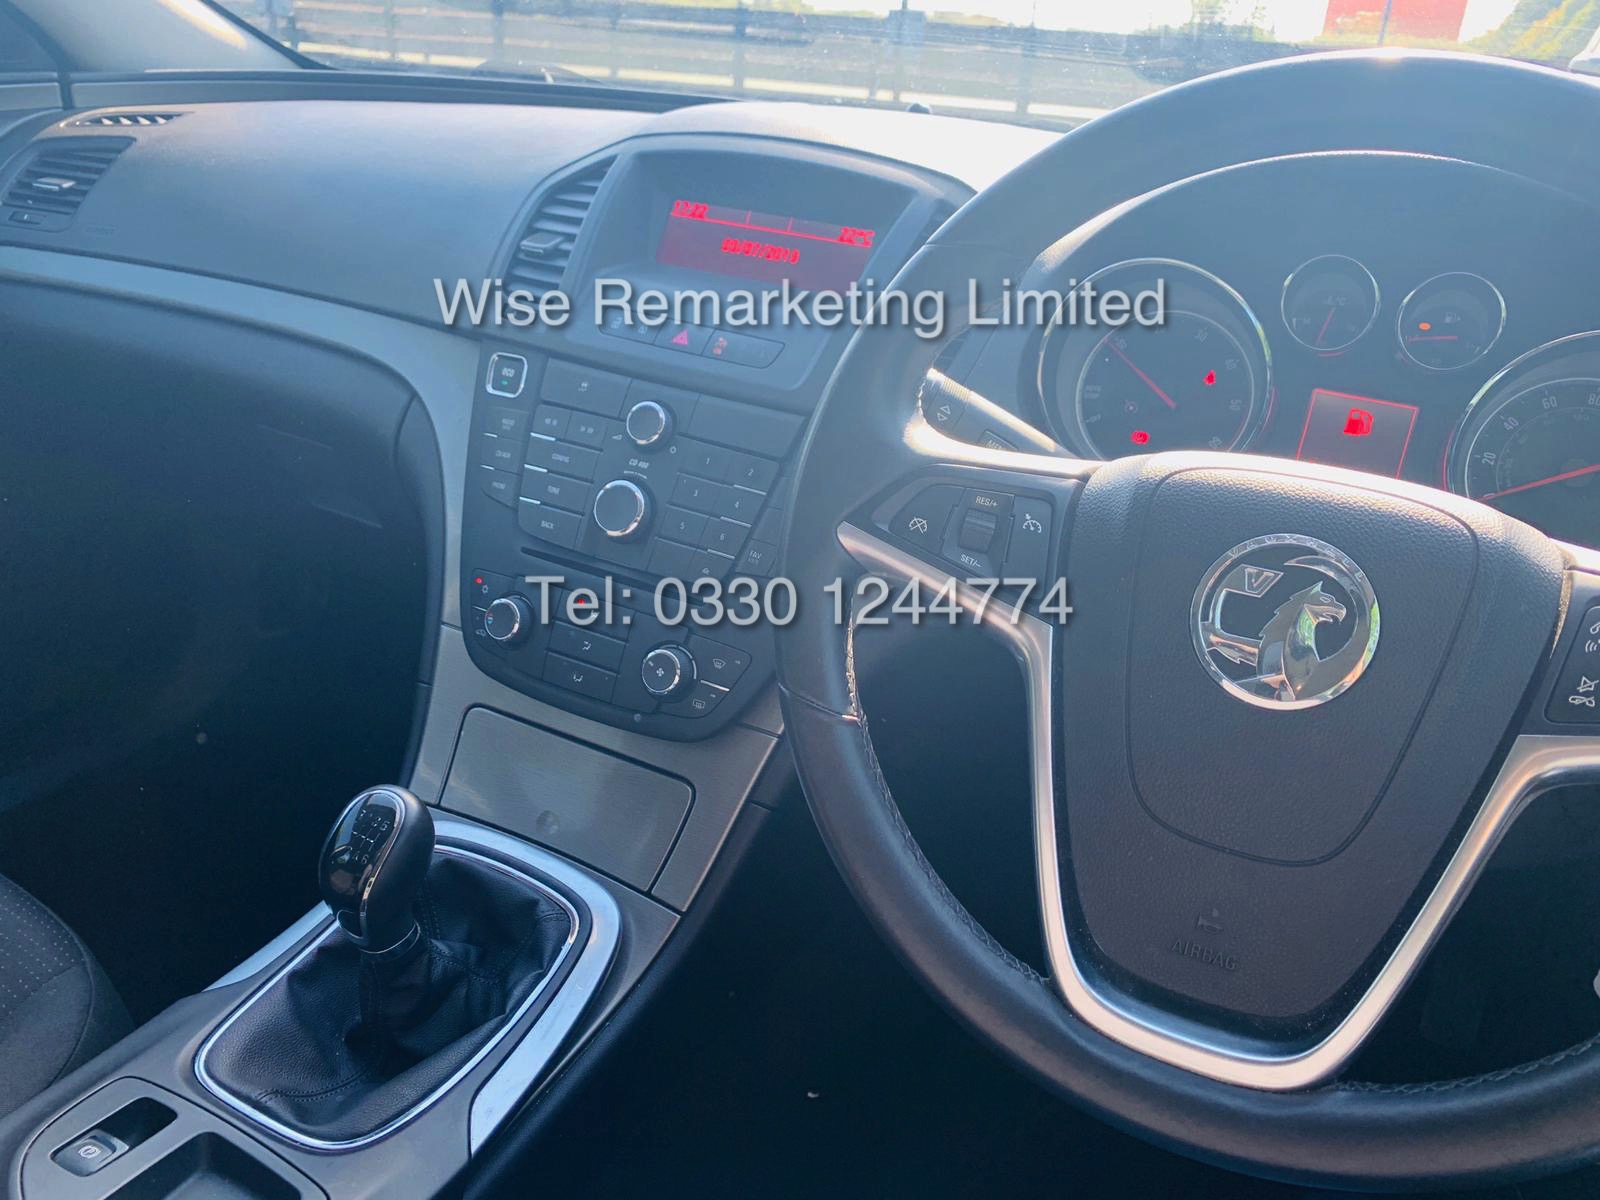 VAUXHALL INSIGNIA 2.0 CDTI ECOFLEX ES 2013 *FSH* 1 OWNER FROM NEW - Image 24 of 30